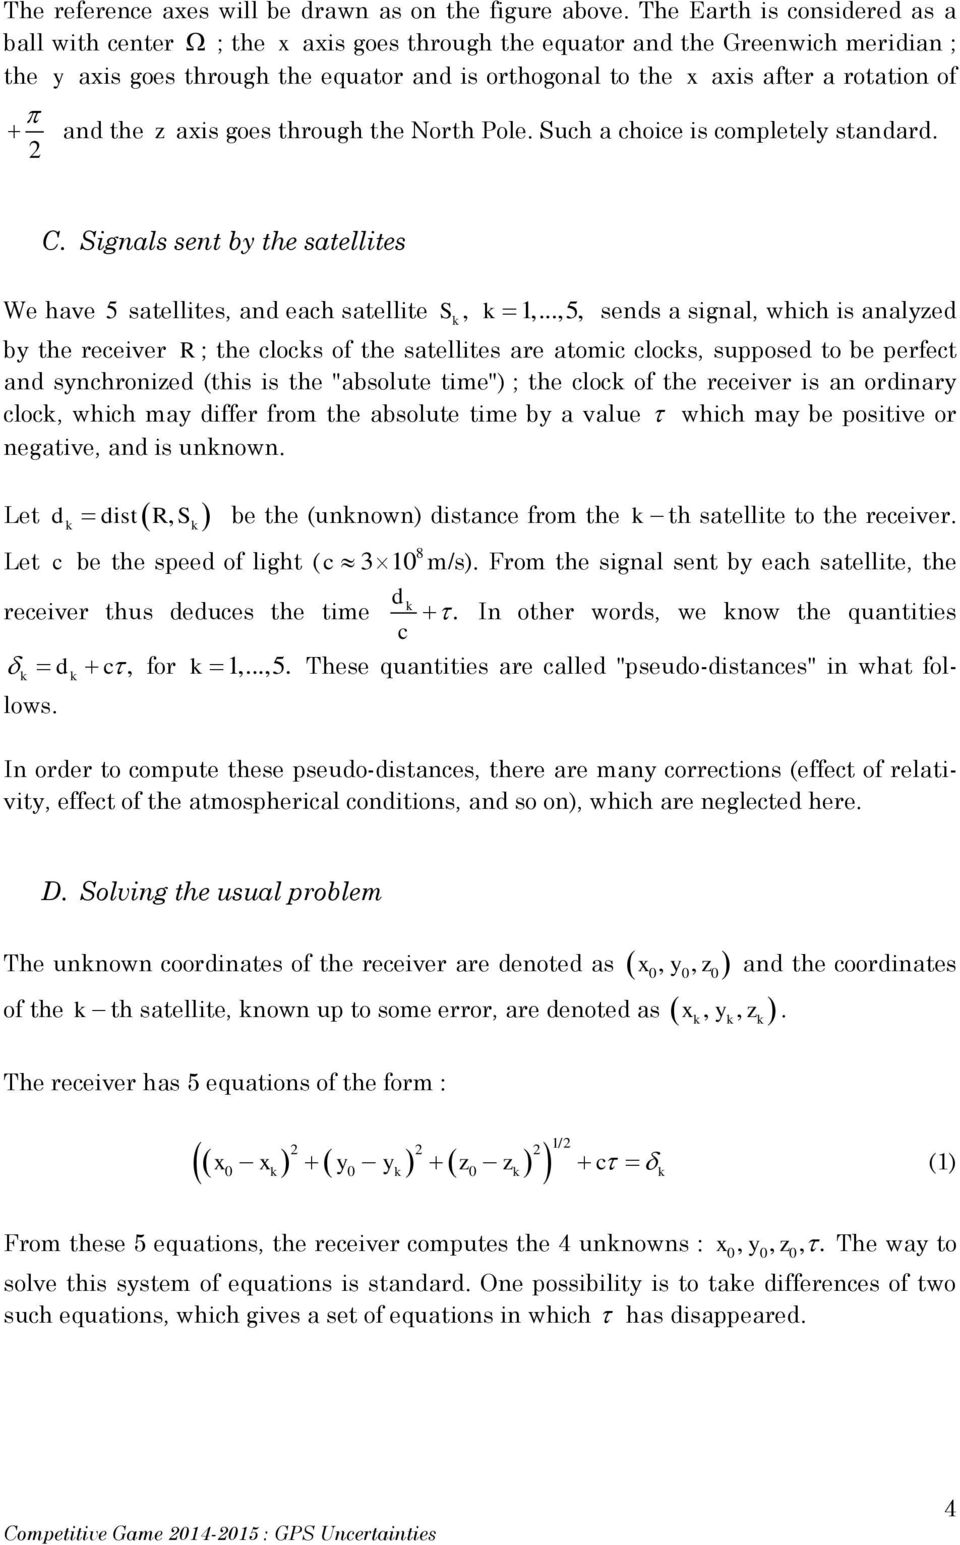 Mathematical Competitive Game Uncertainties in GPS Positioning - PDF